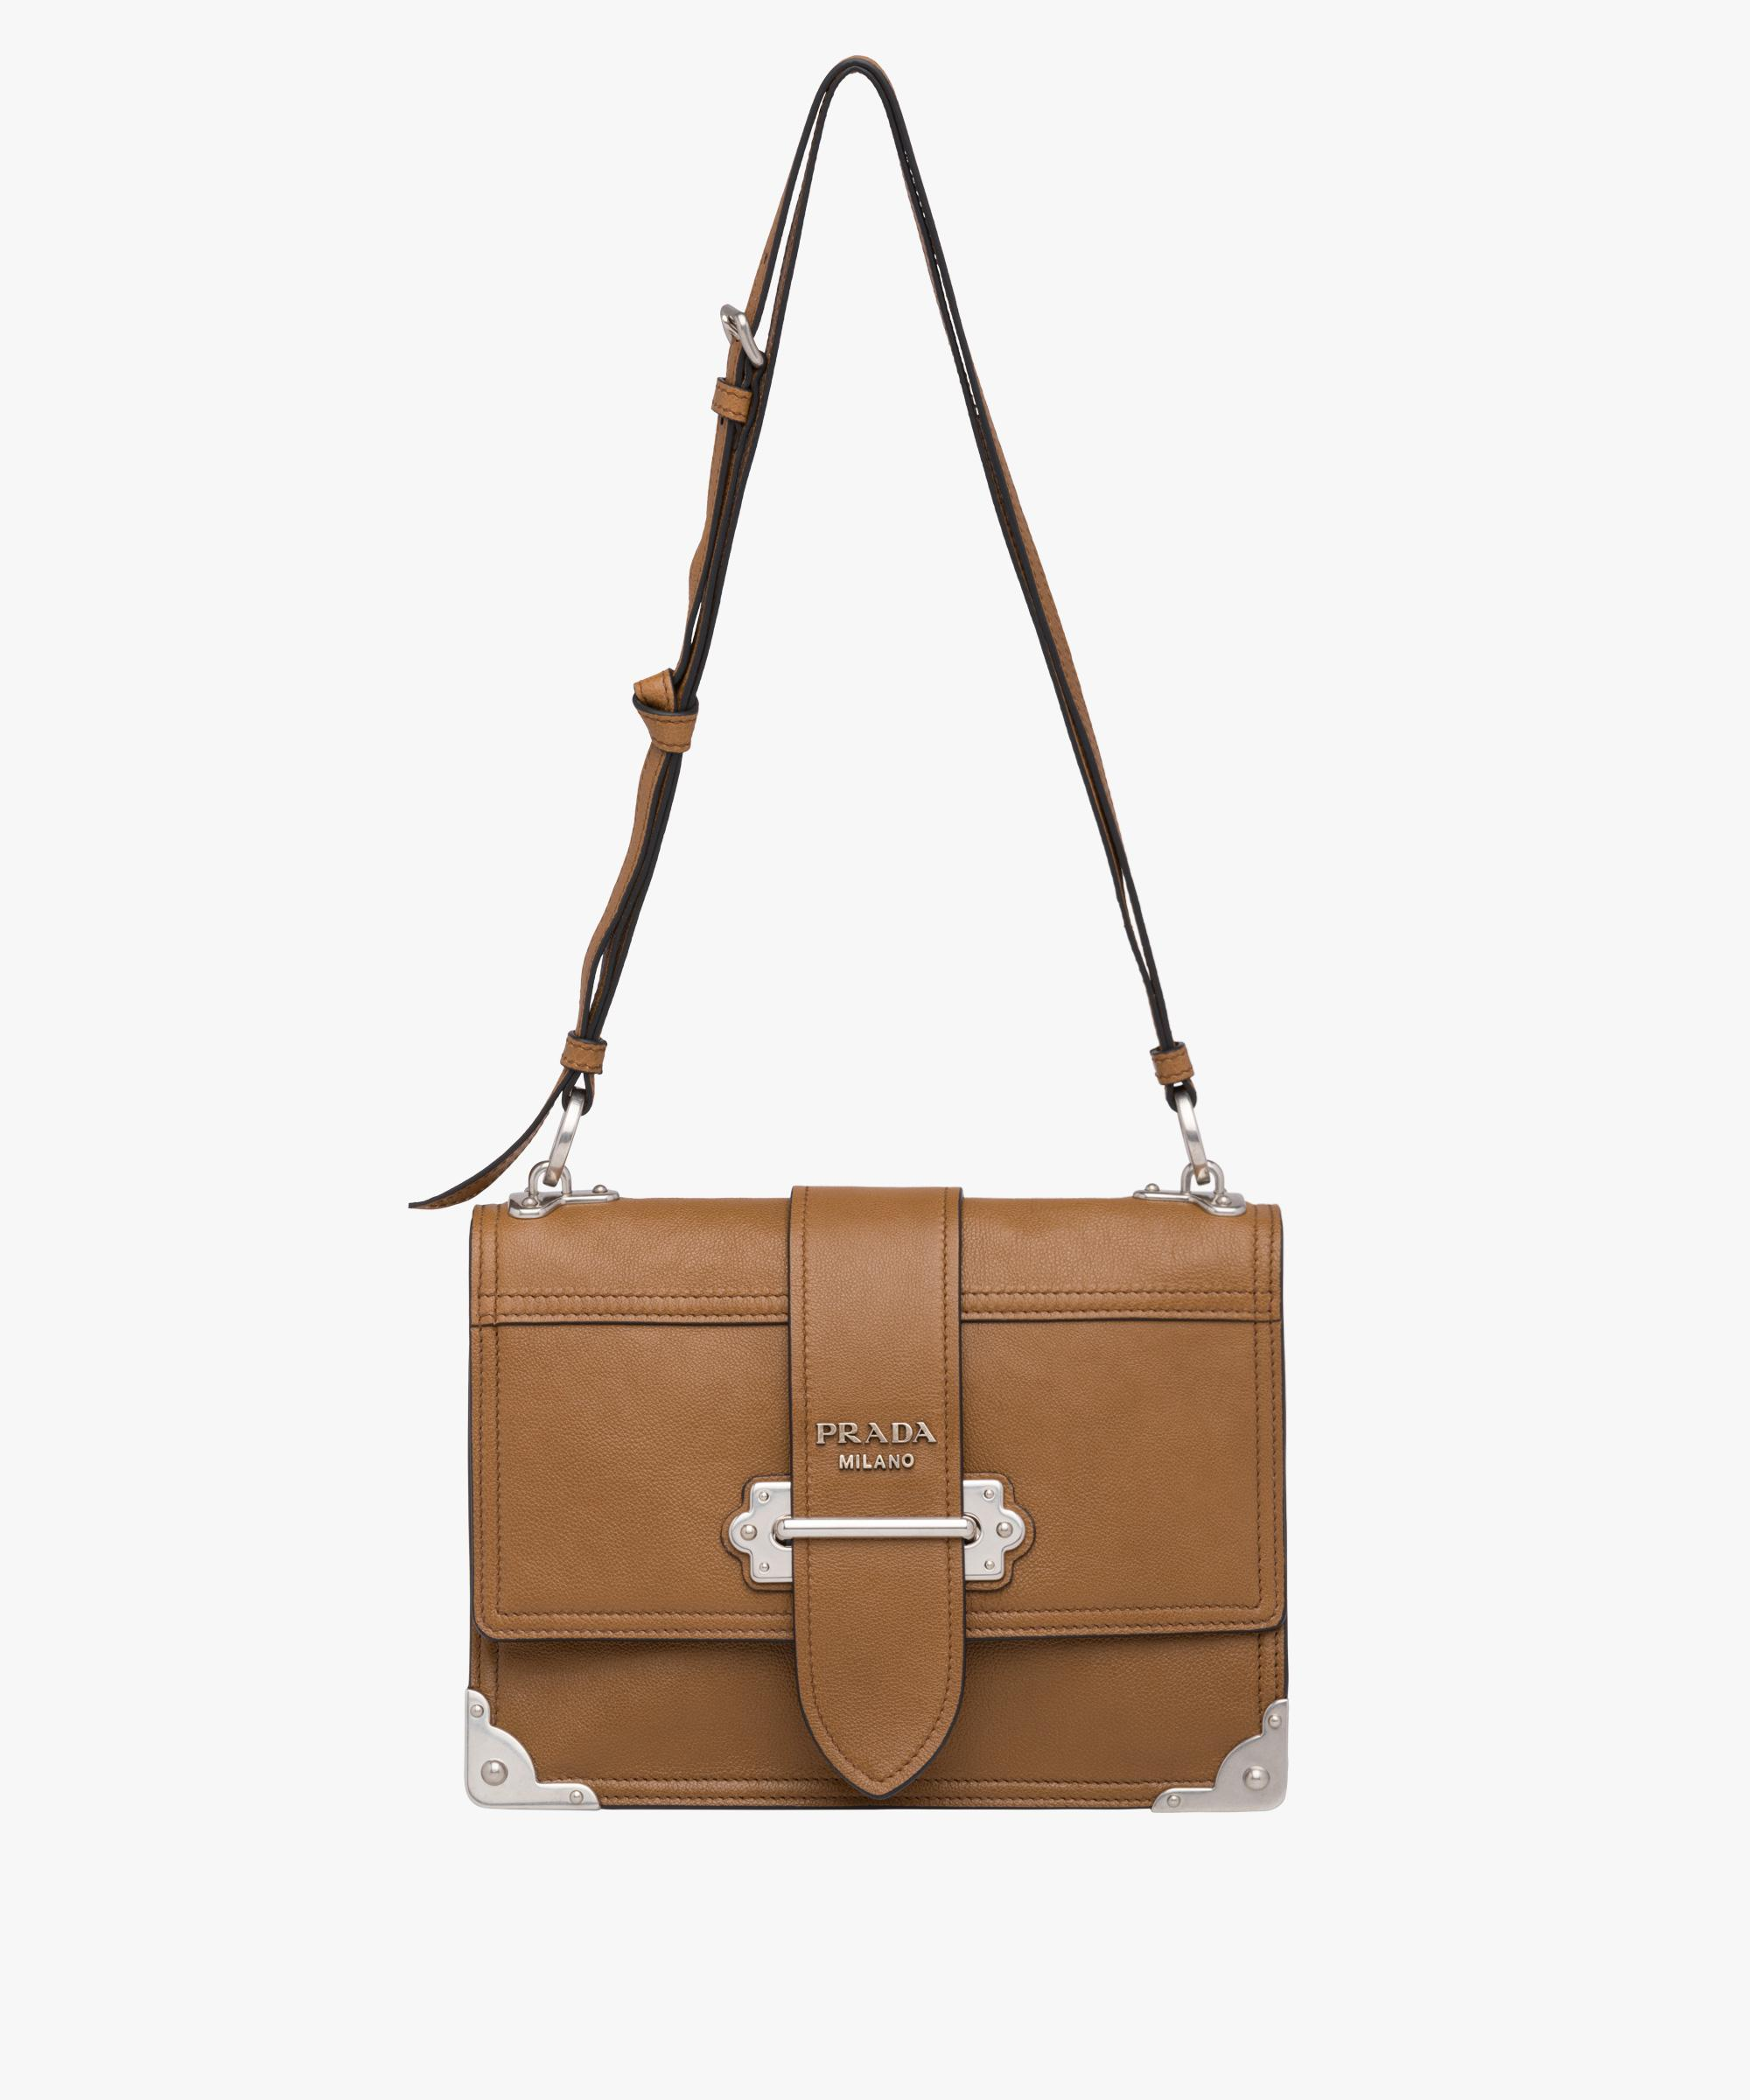 e46db79e4211 ... uk lyst prada cahier leather shoulder bag in brown ac777 a82ad